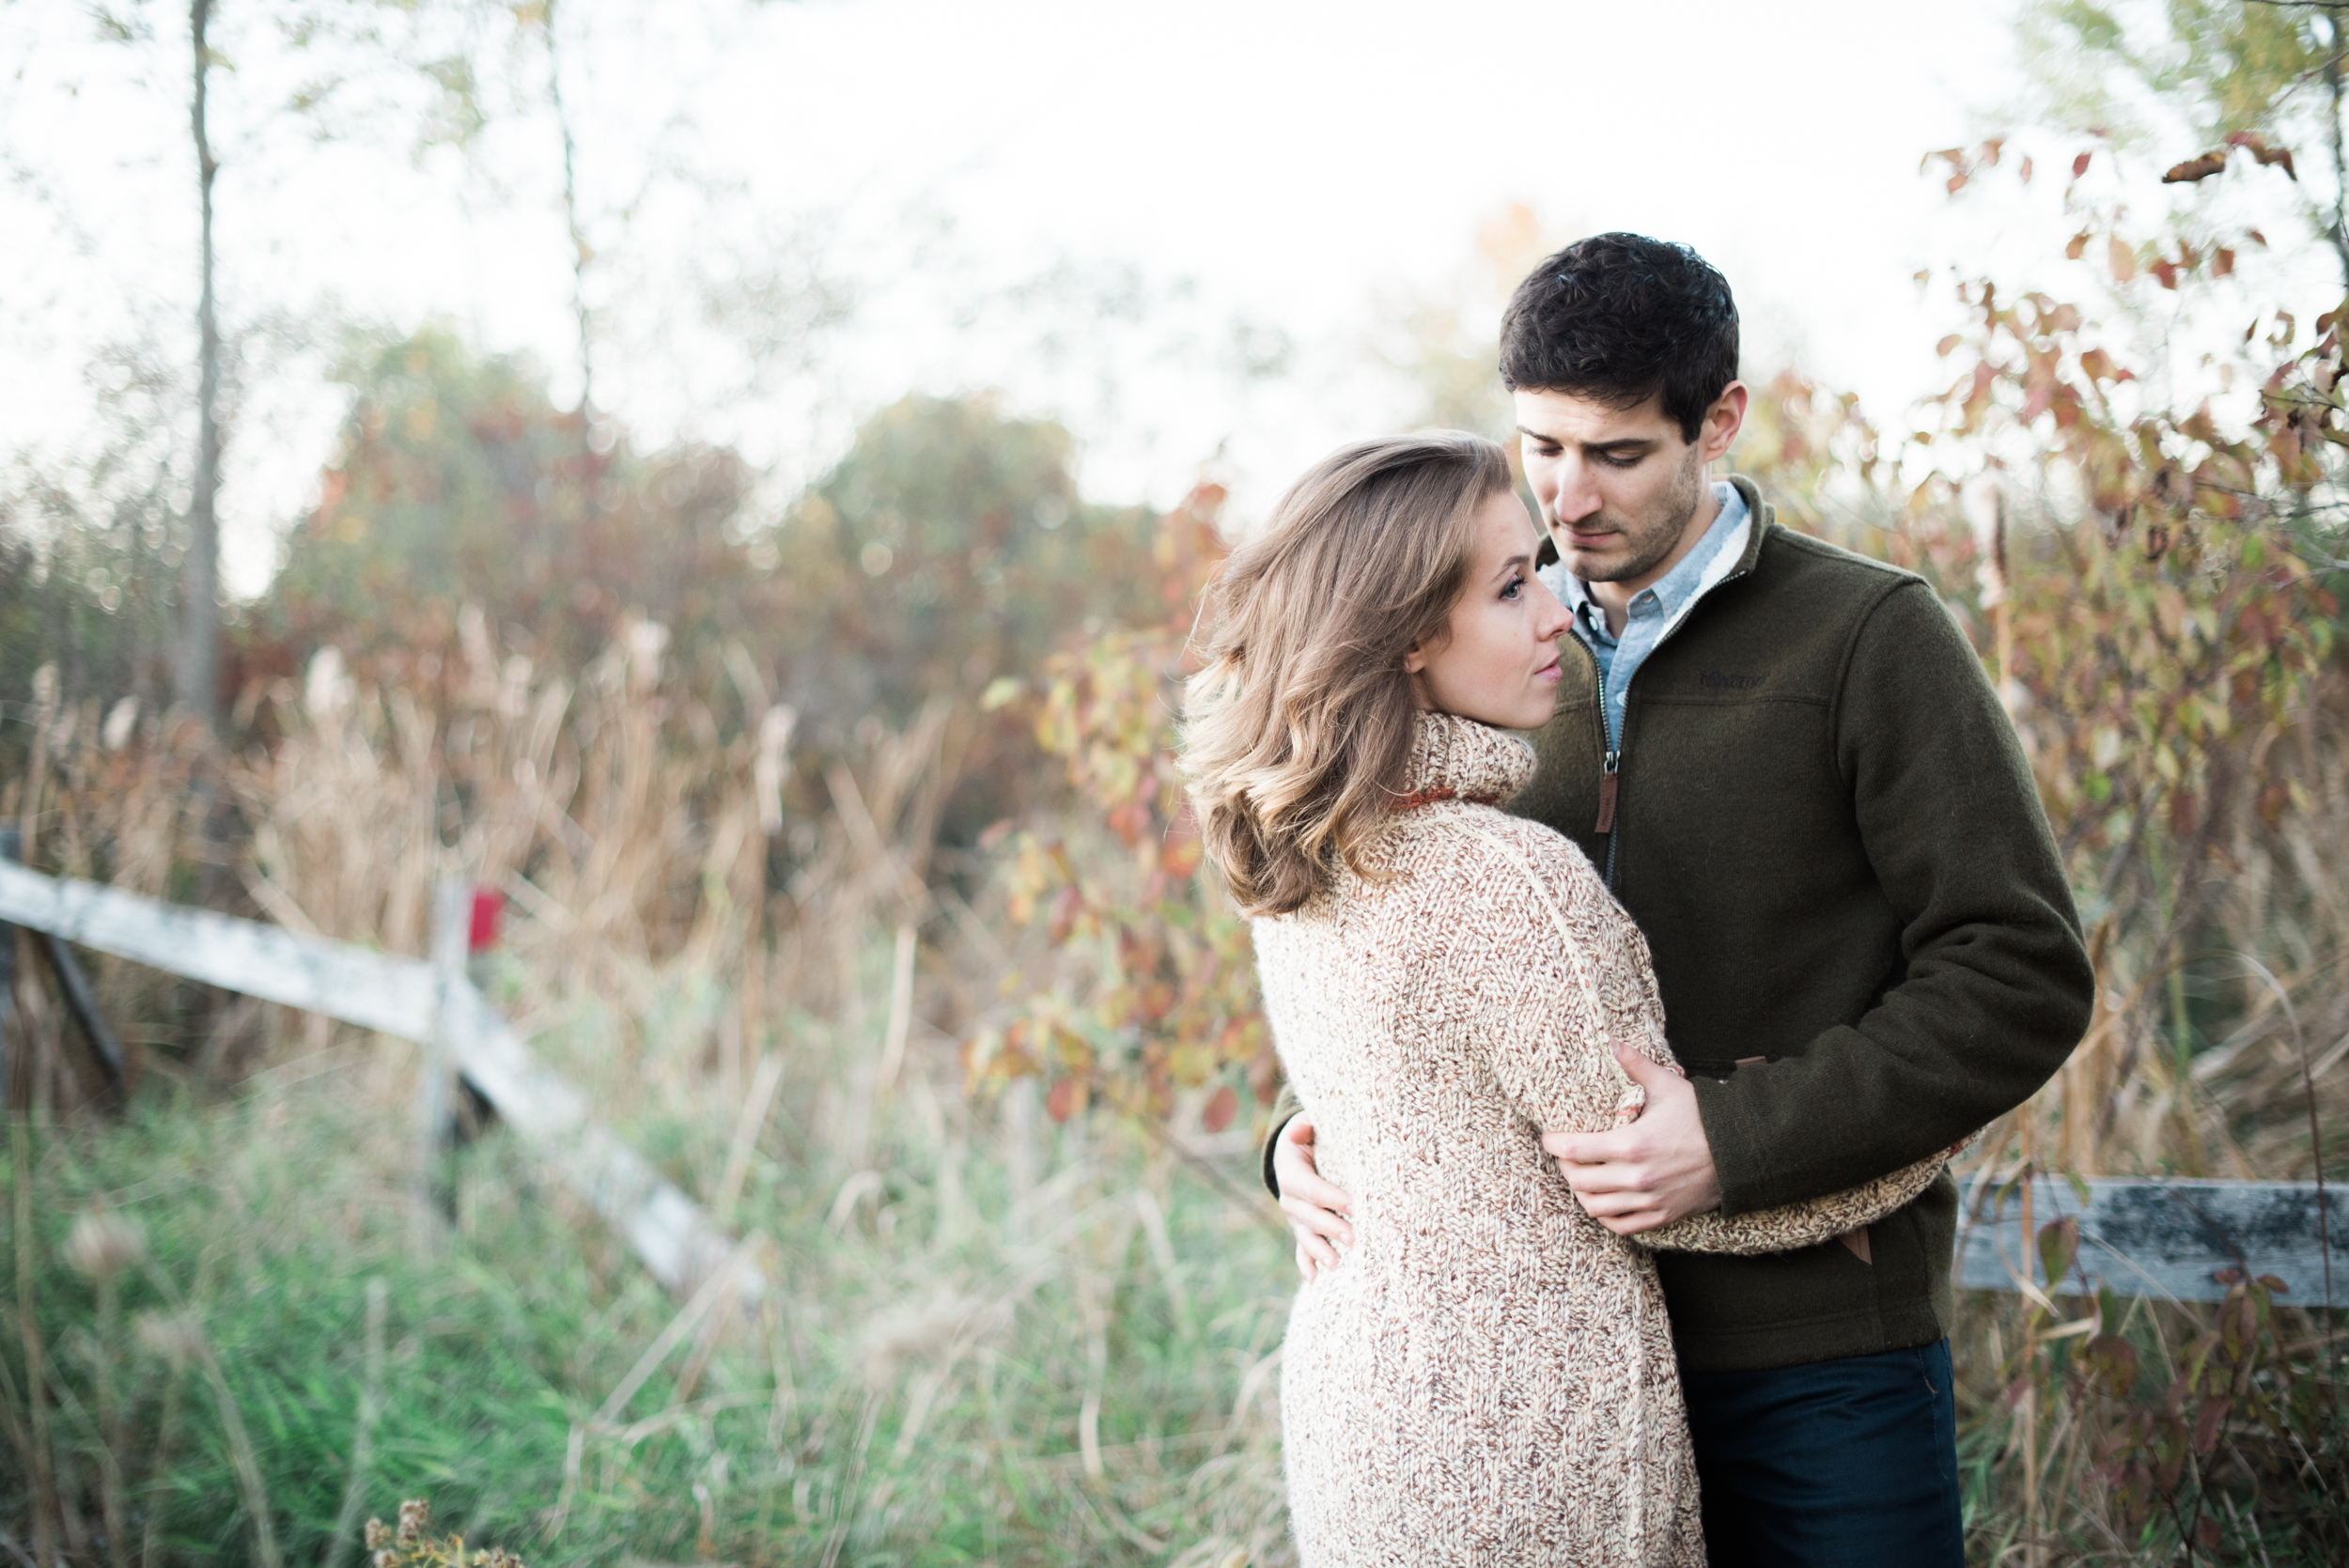 Romantic Engagement Photography in MA